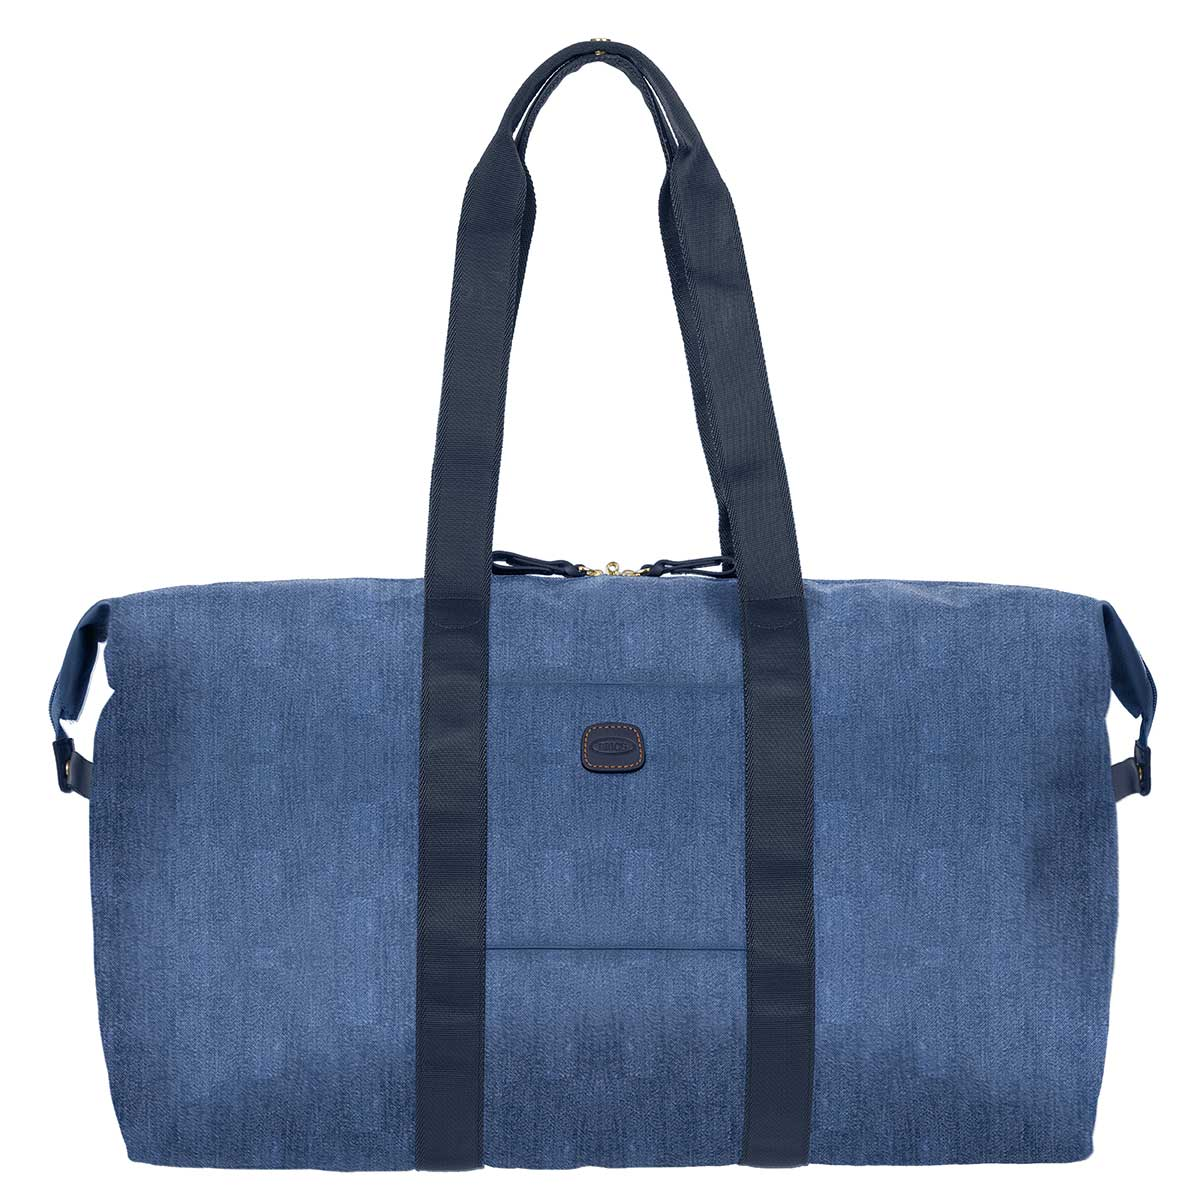 X-Bag 18″ Folding Duffle Bag - Jean Blue | BRIC'S Travel Bag